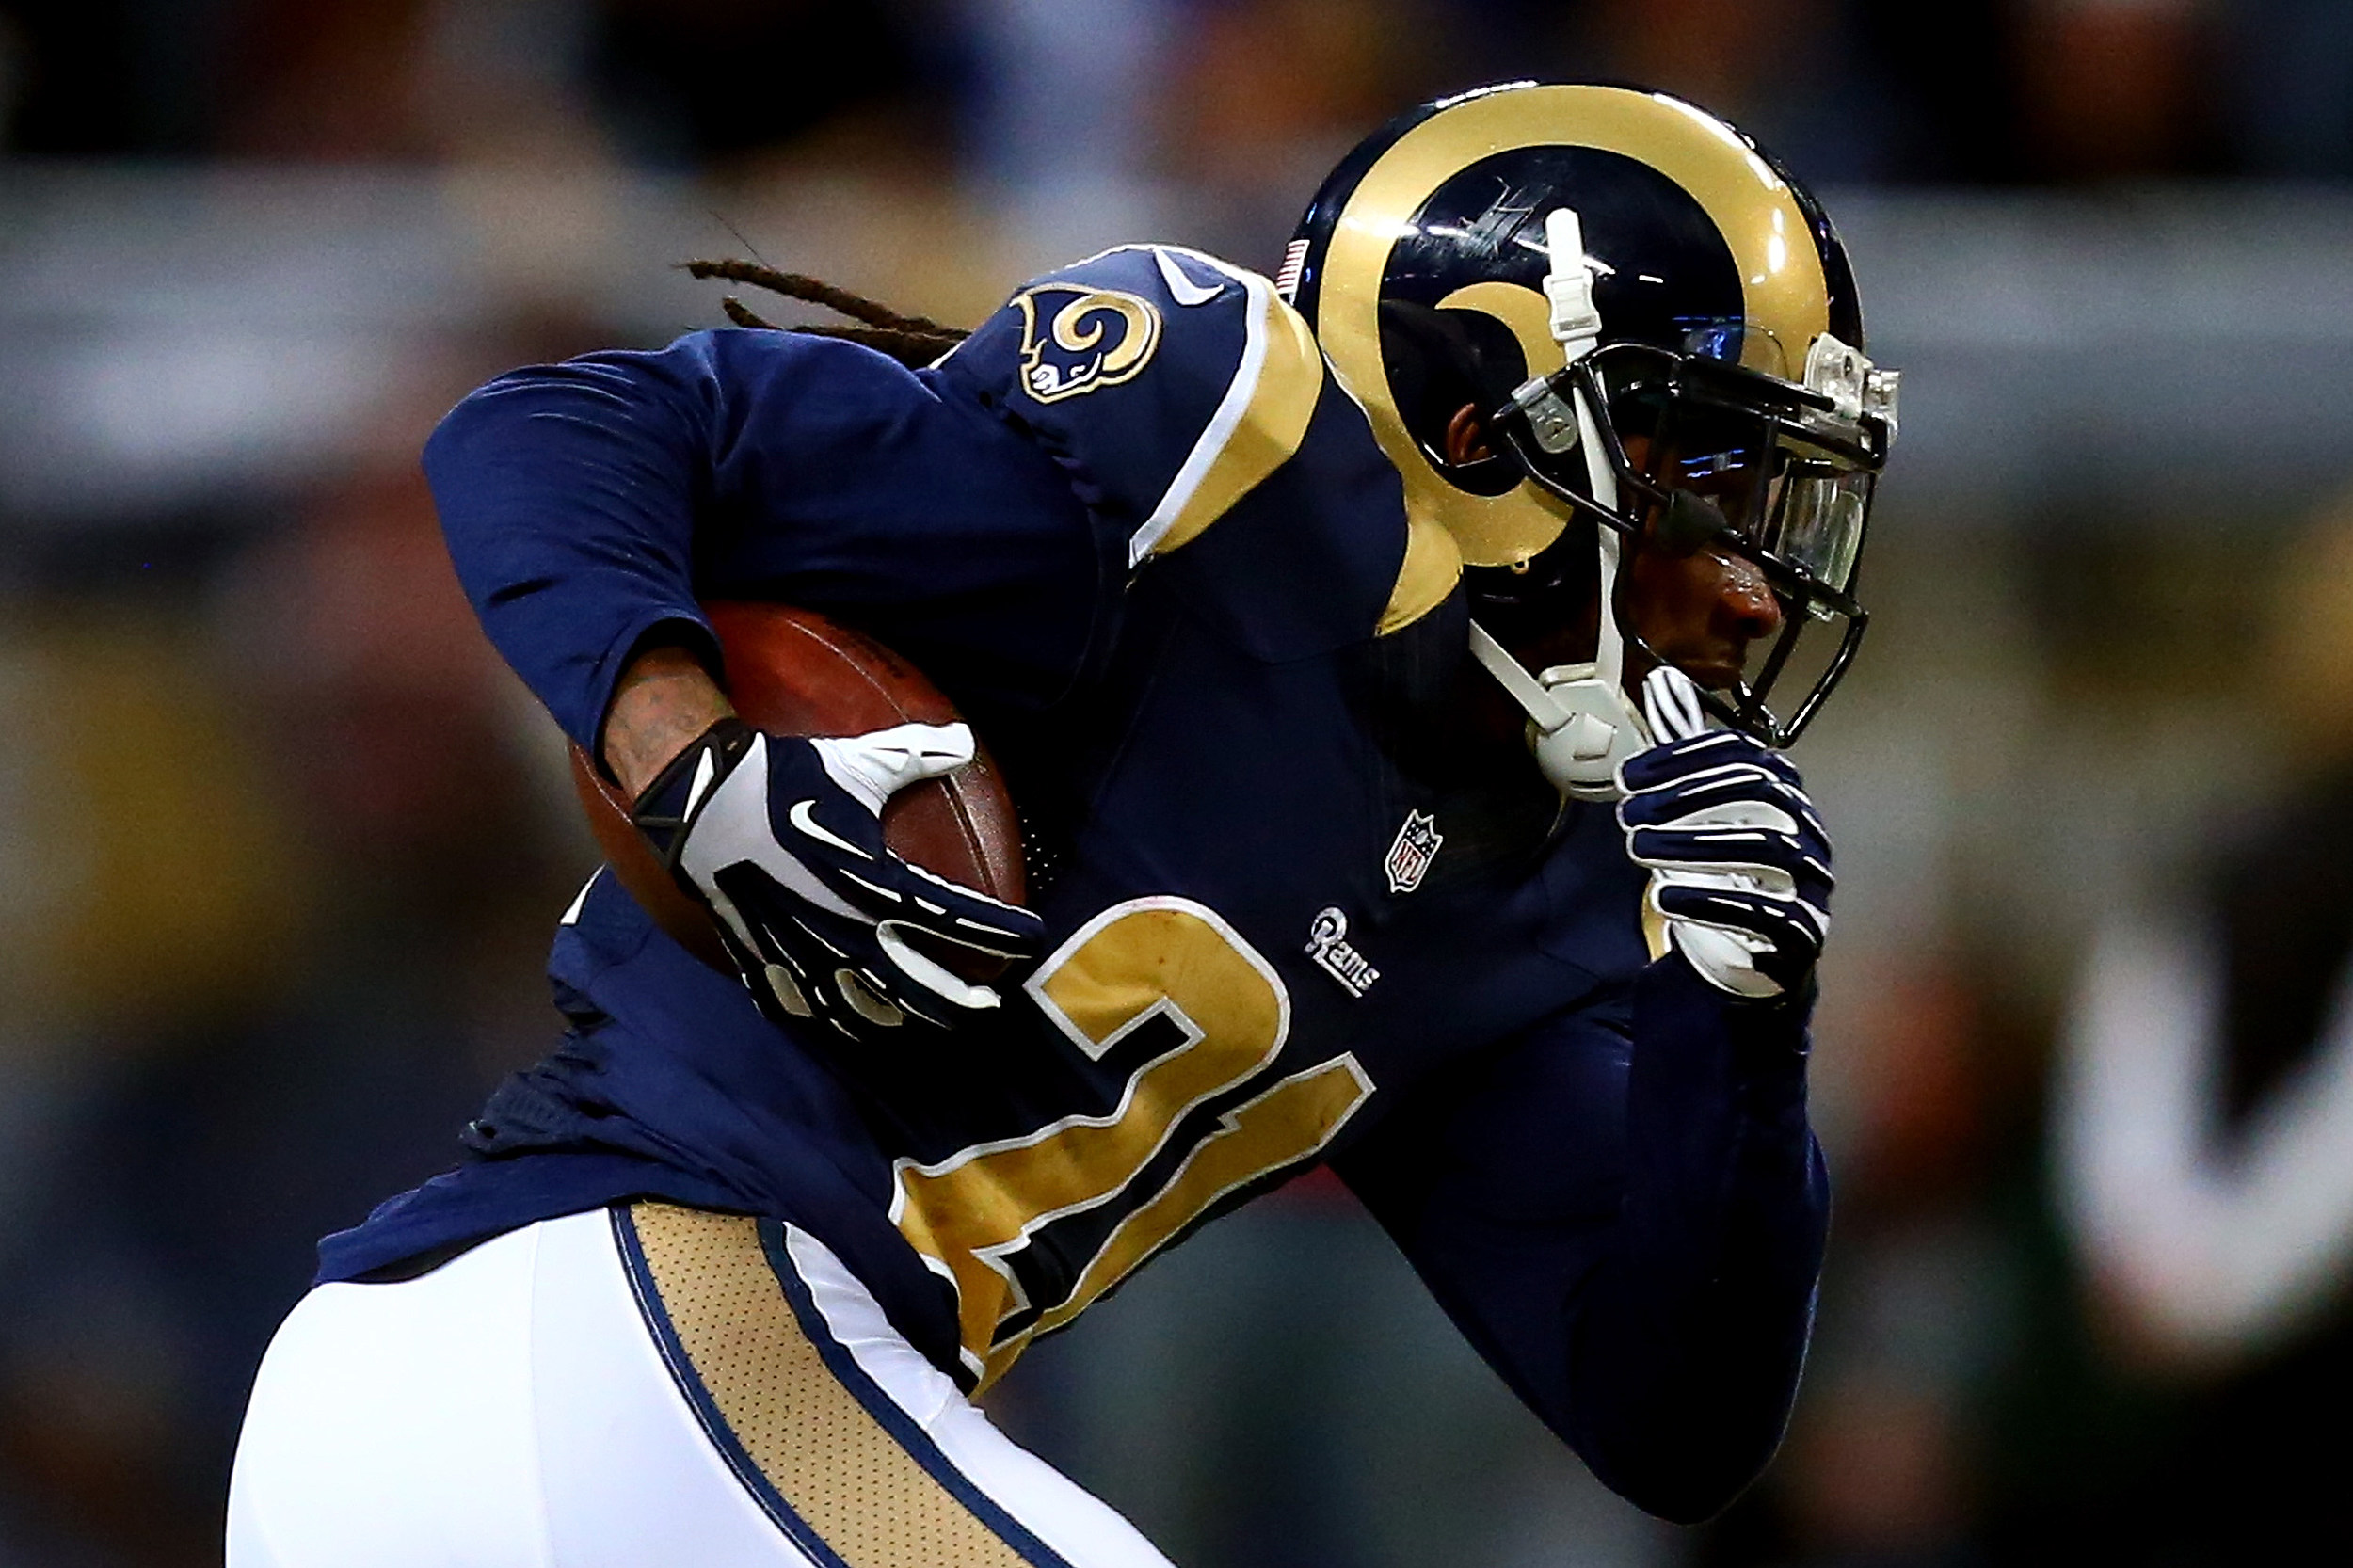 Cornerback Janoris Jenkins to sign with Giants